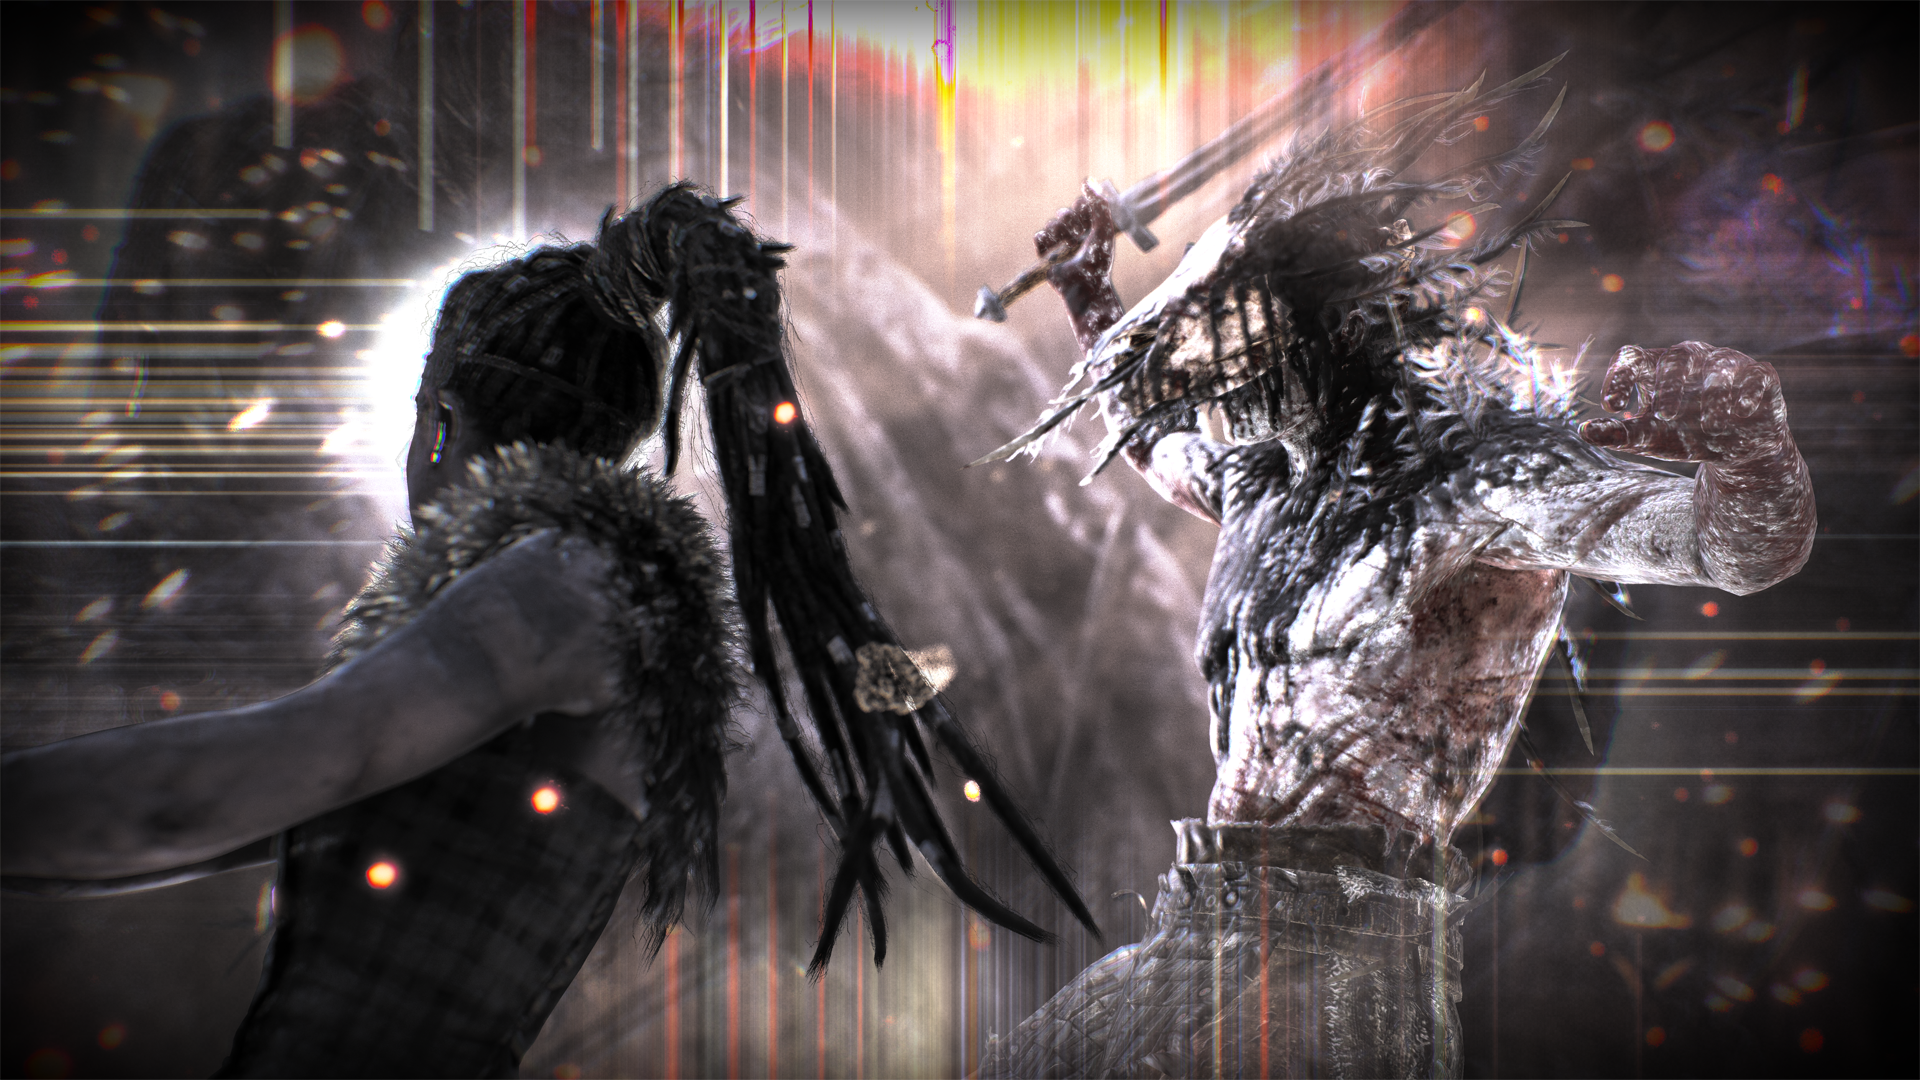 hellblade photo mode revealed features several filters